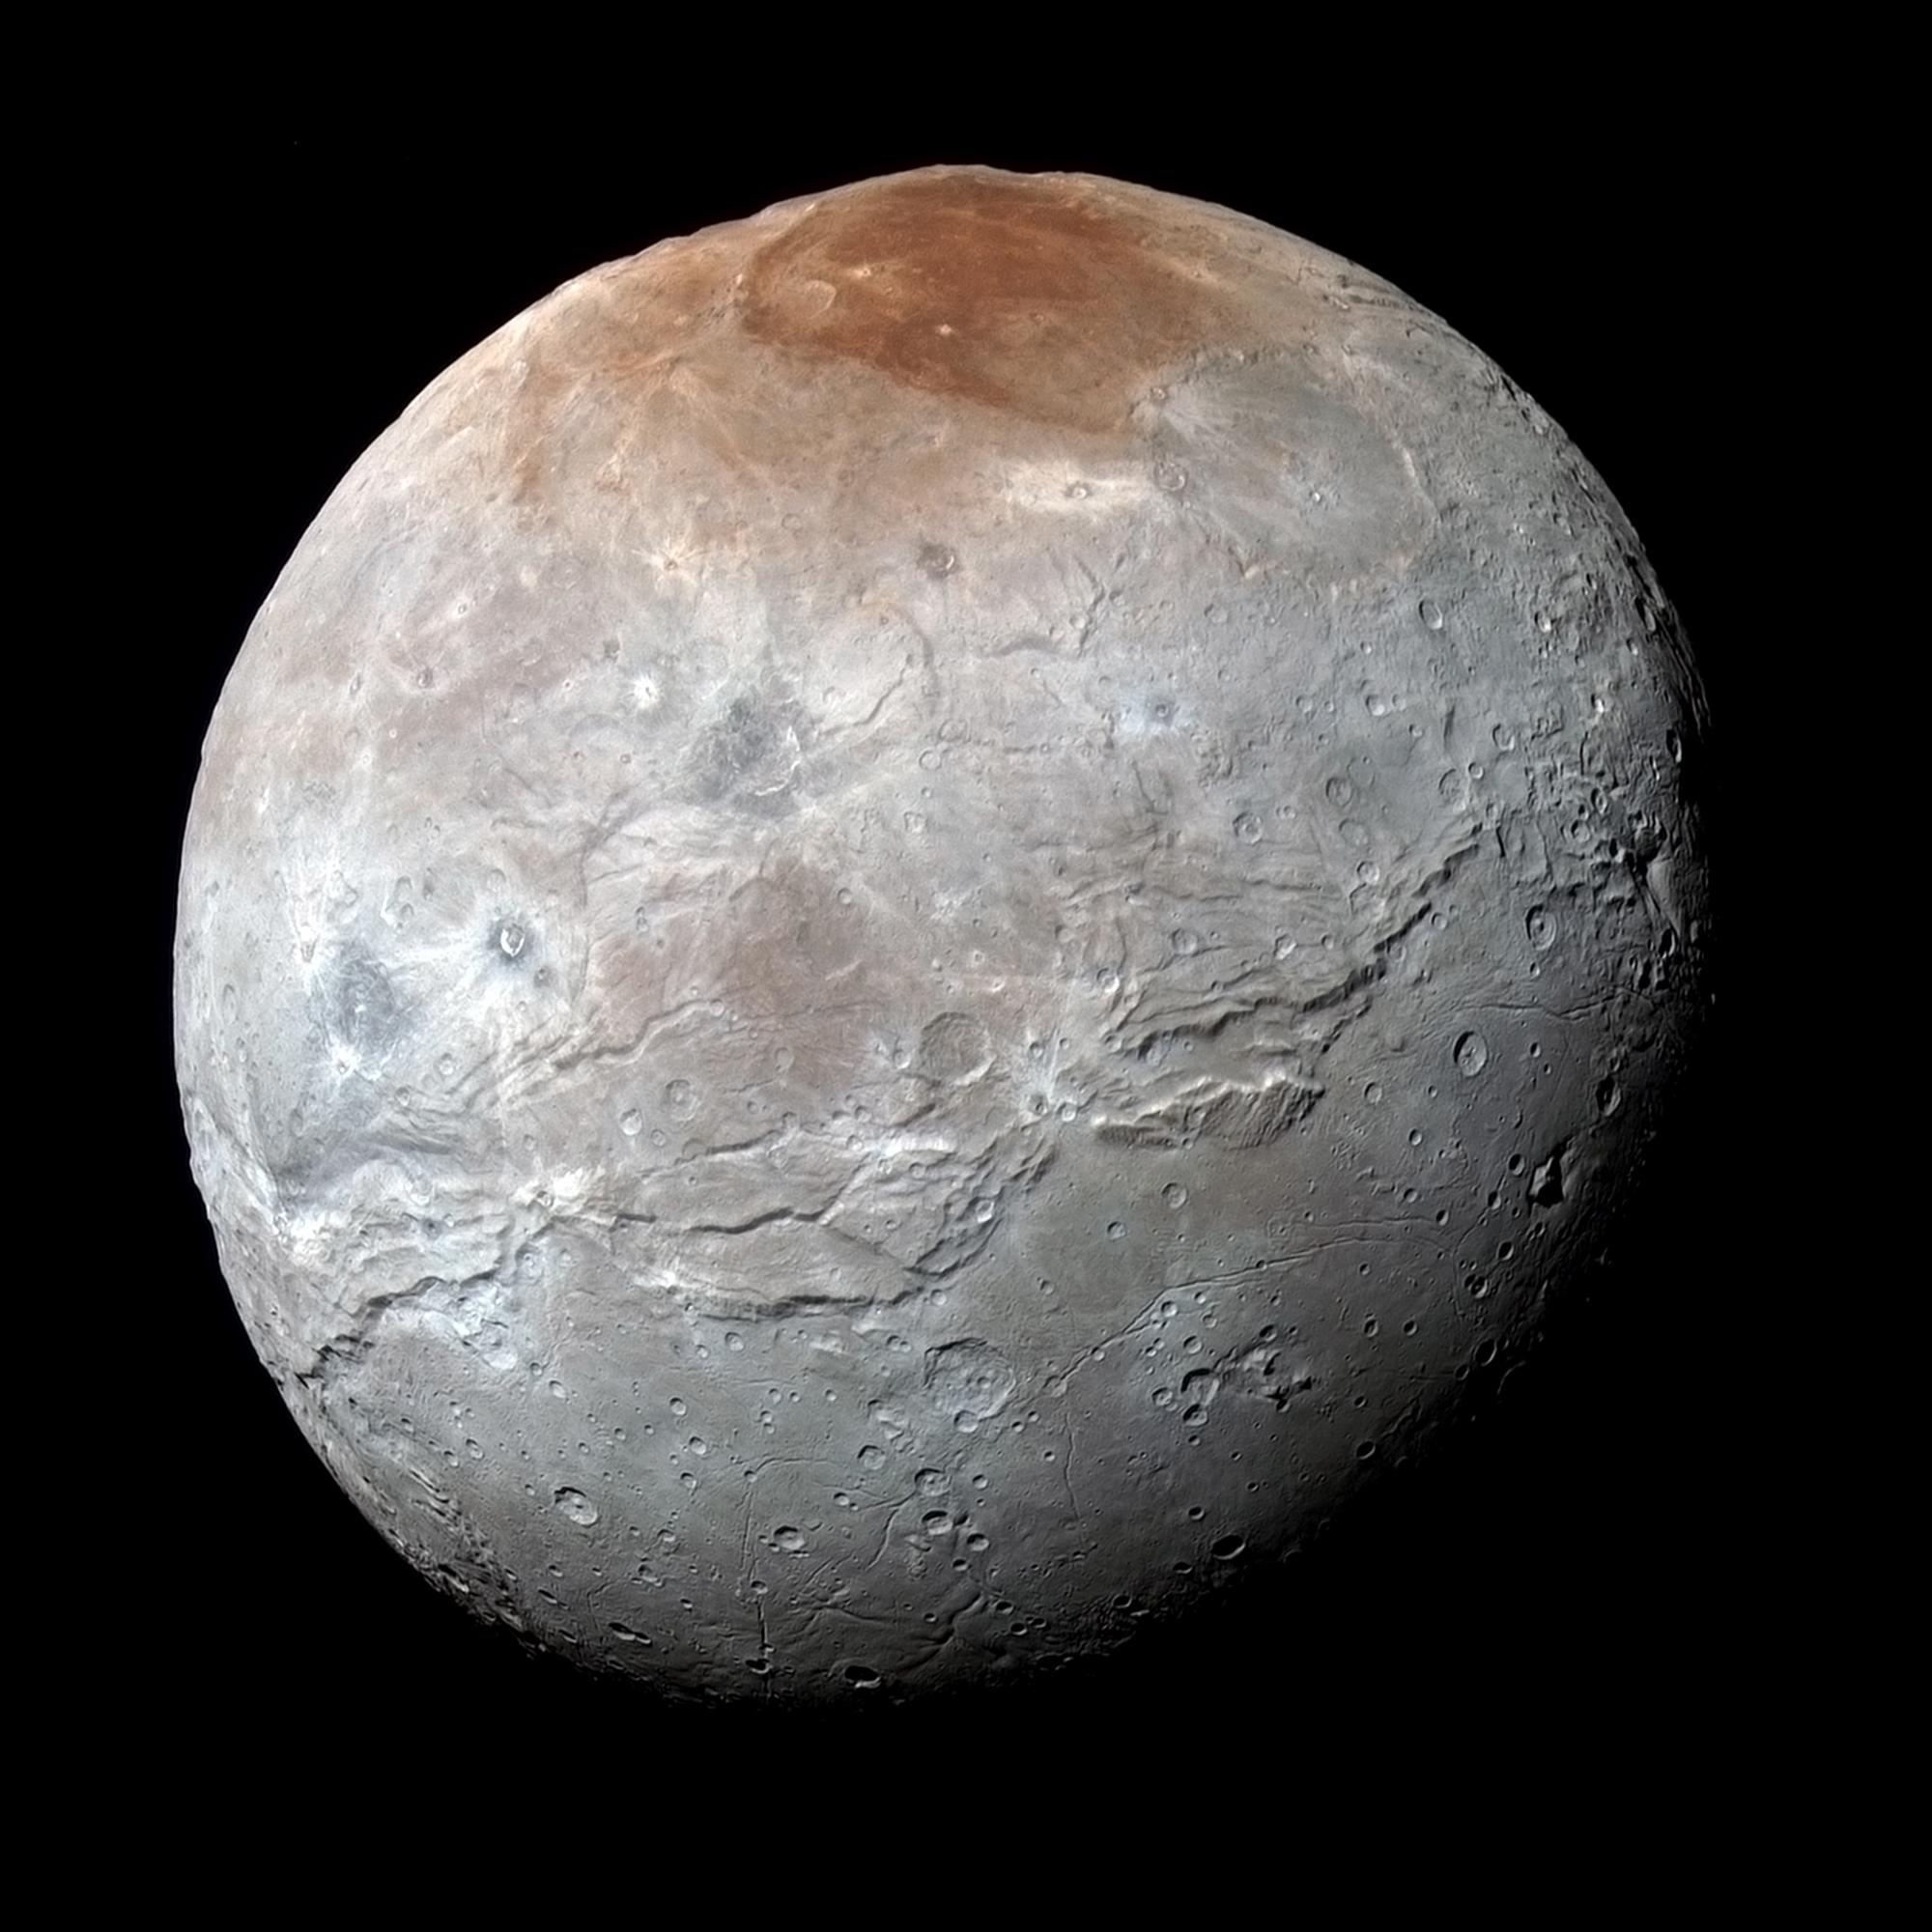 X-Rays From Pluto, Charon's Weird Red Spot Examined In New Studies